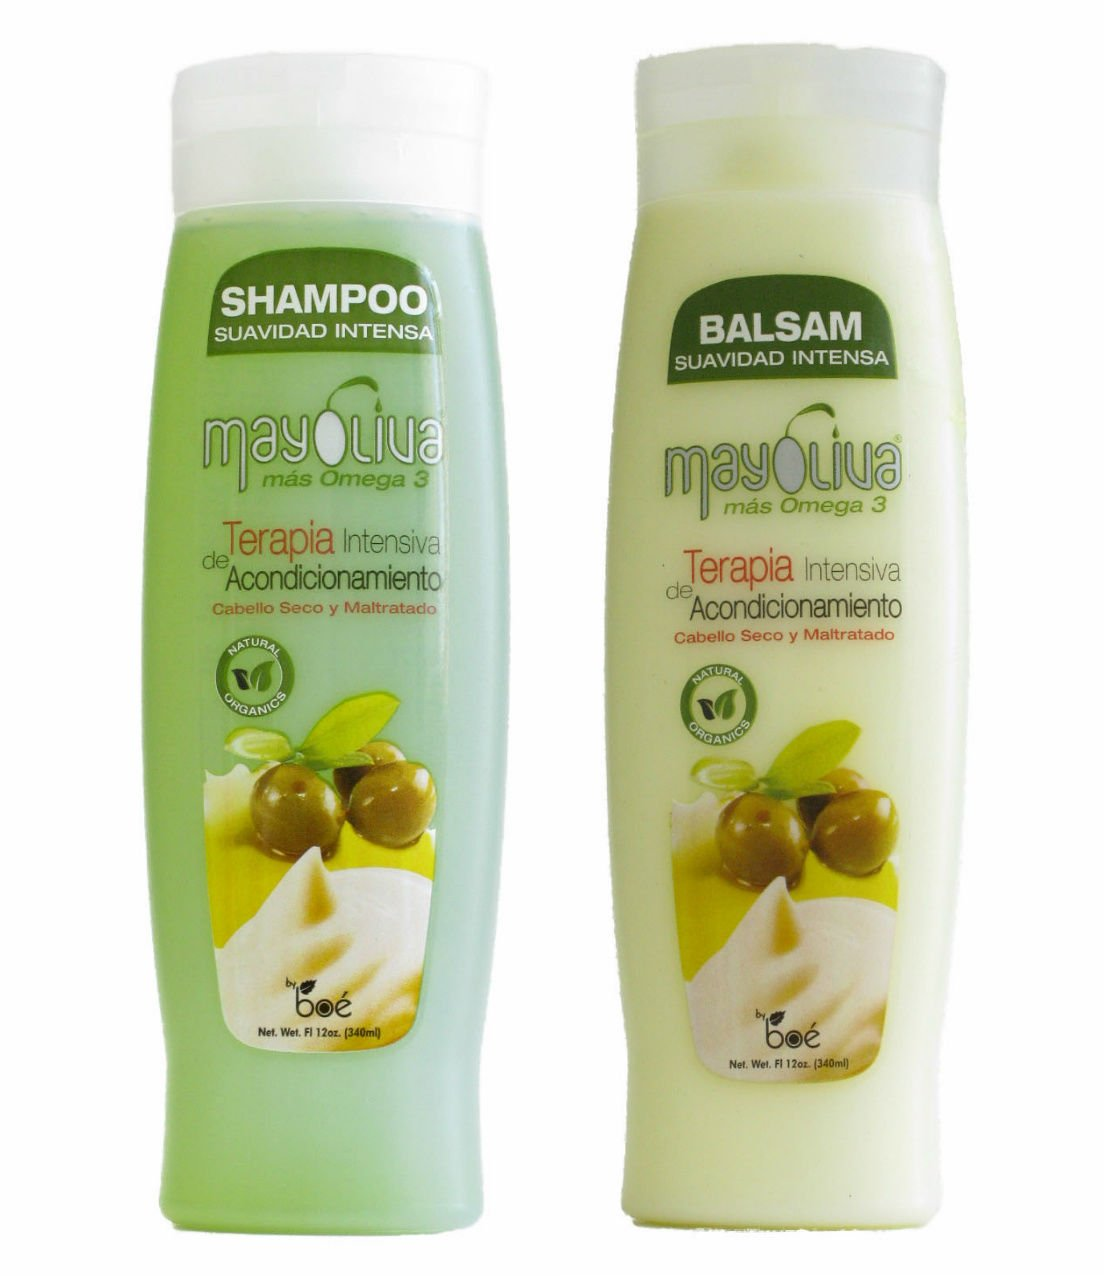 Mayoliva Mas Omega 12oz.- Shampoo & Balsam Rinse Set (Dominican Hair)